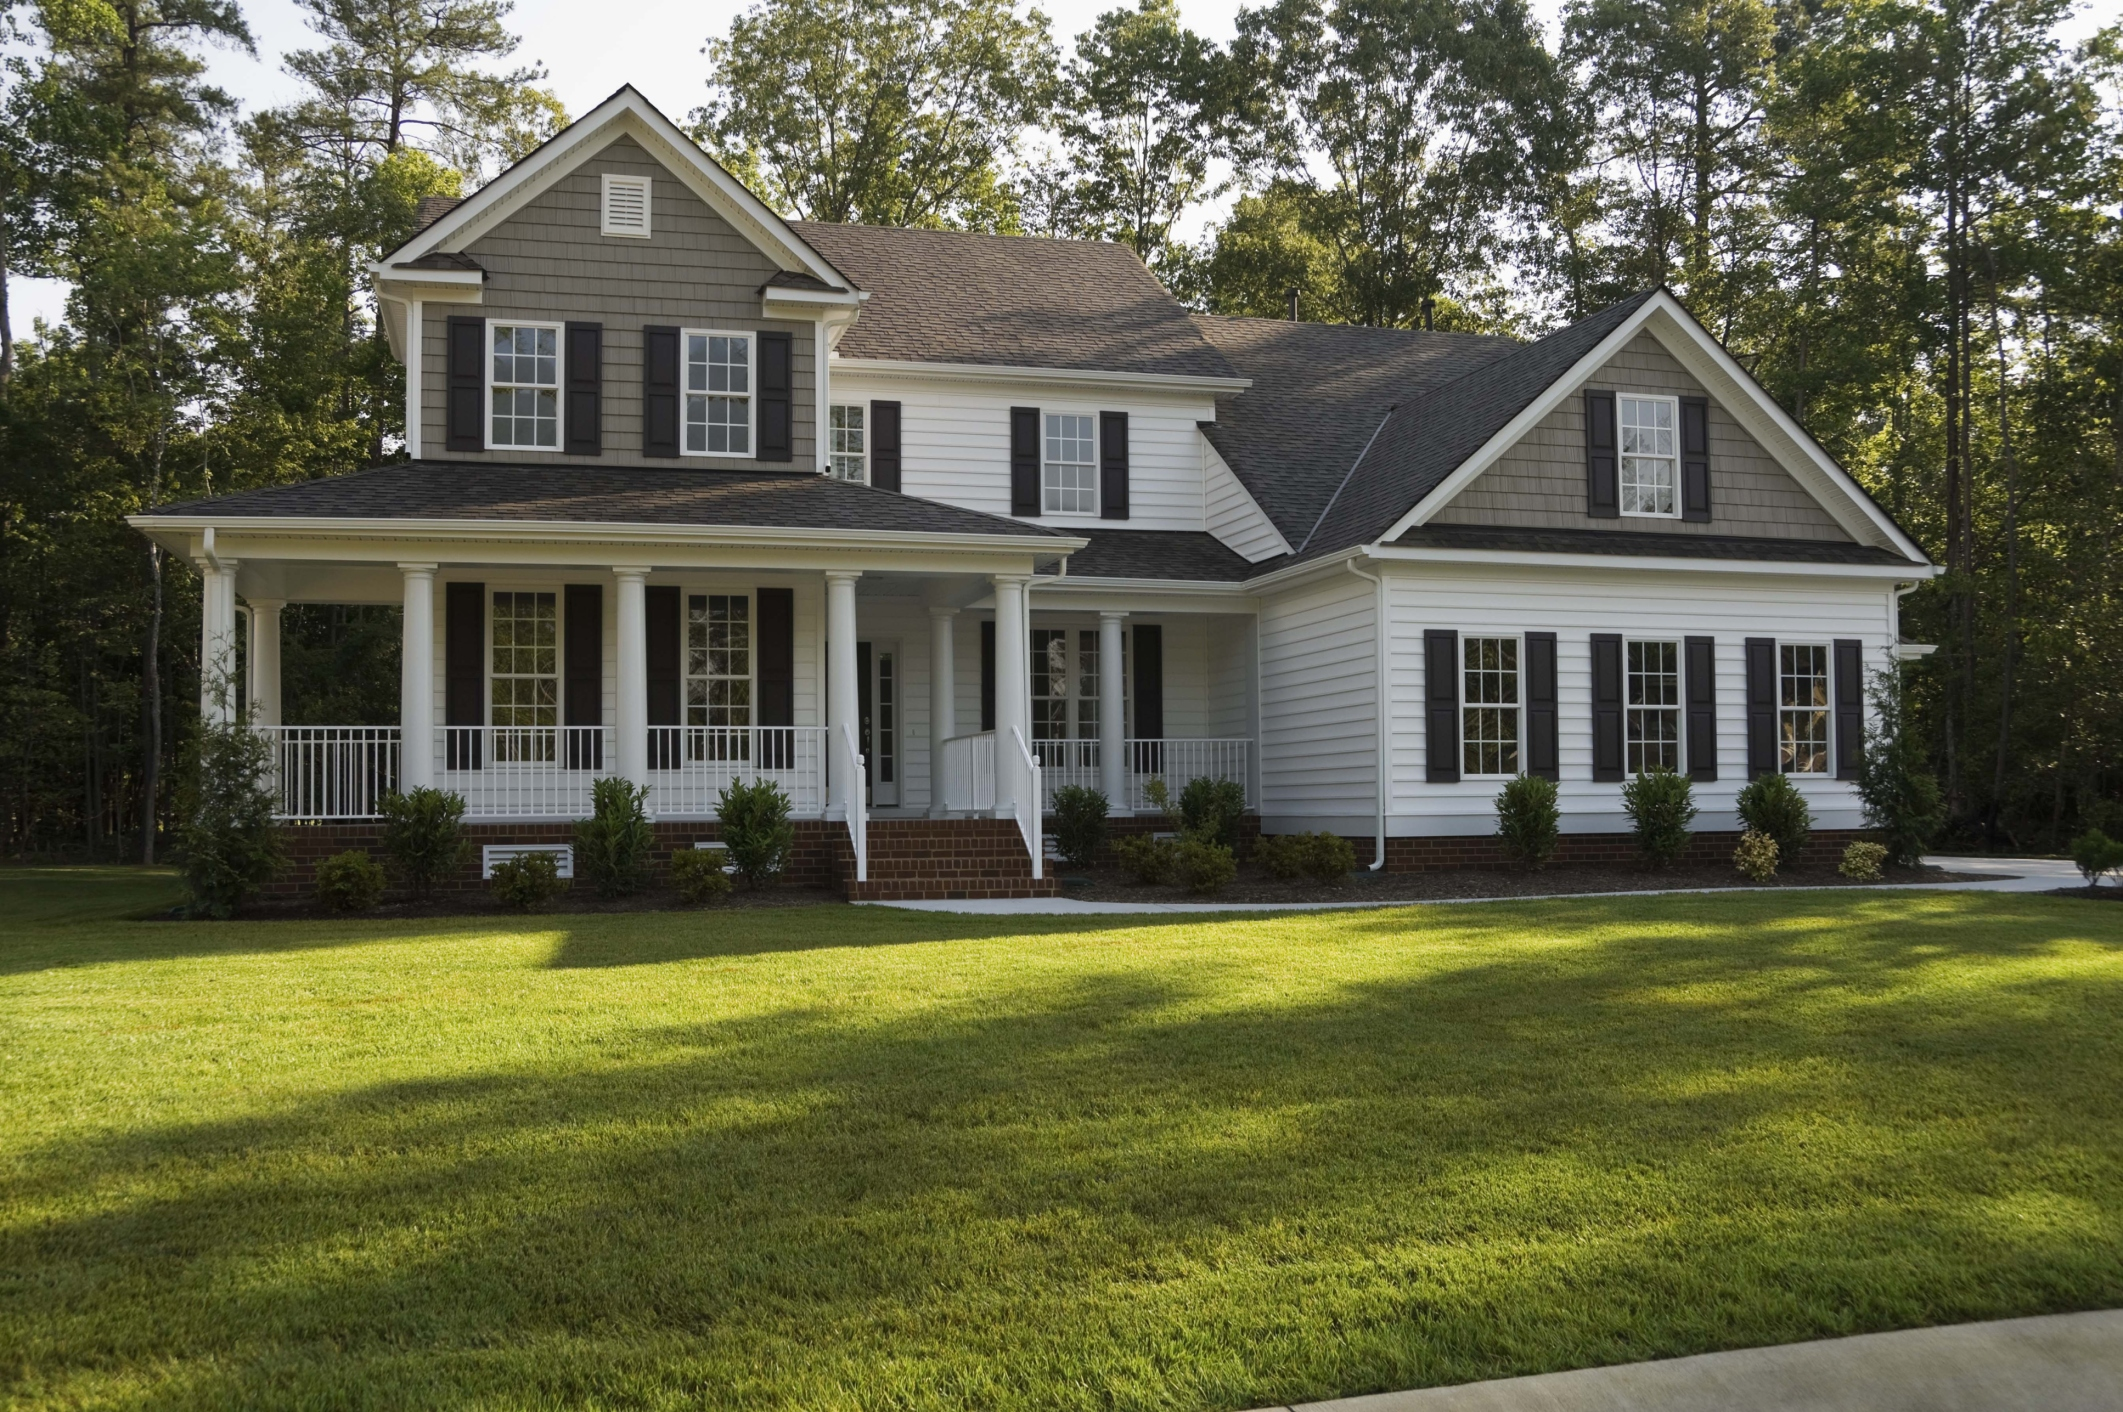 home for sale in Ballwin